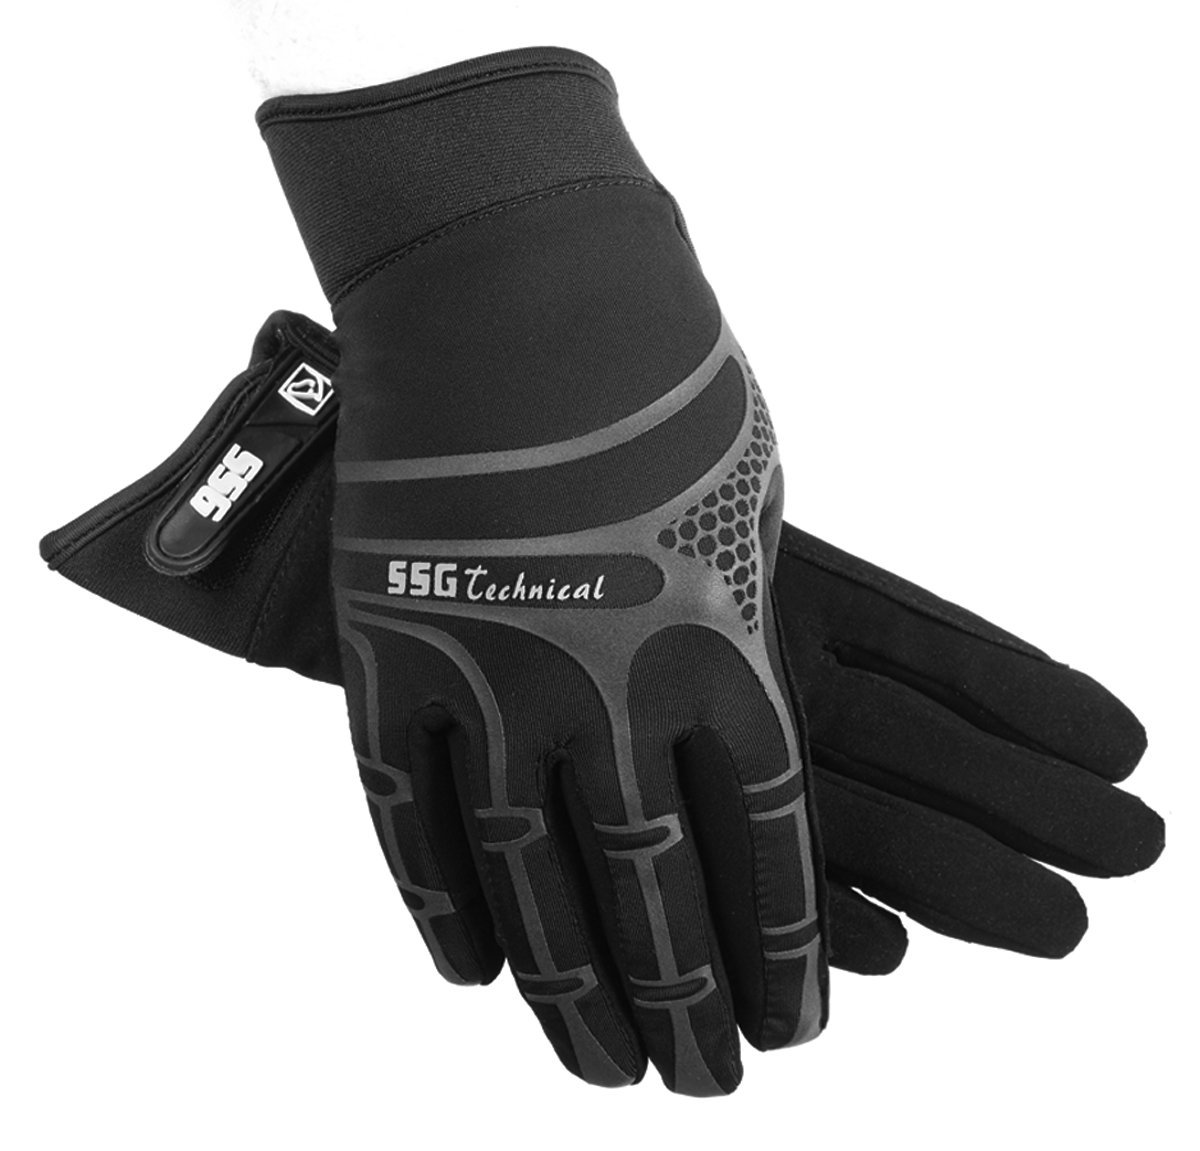 SSG Pro Show Technical Wet or Dry Grip Gloves SSG Gloves